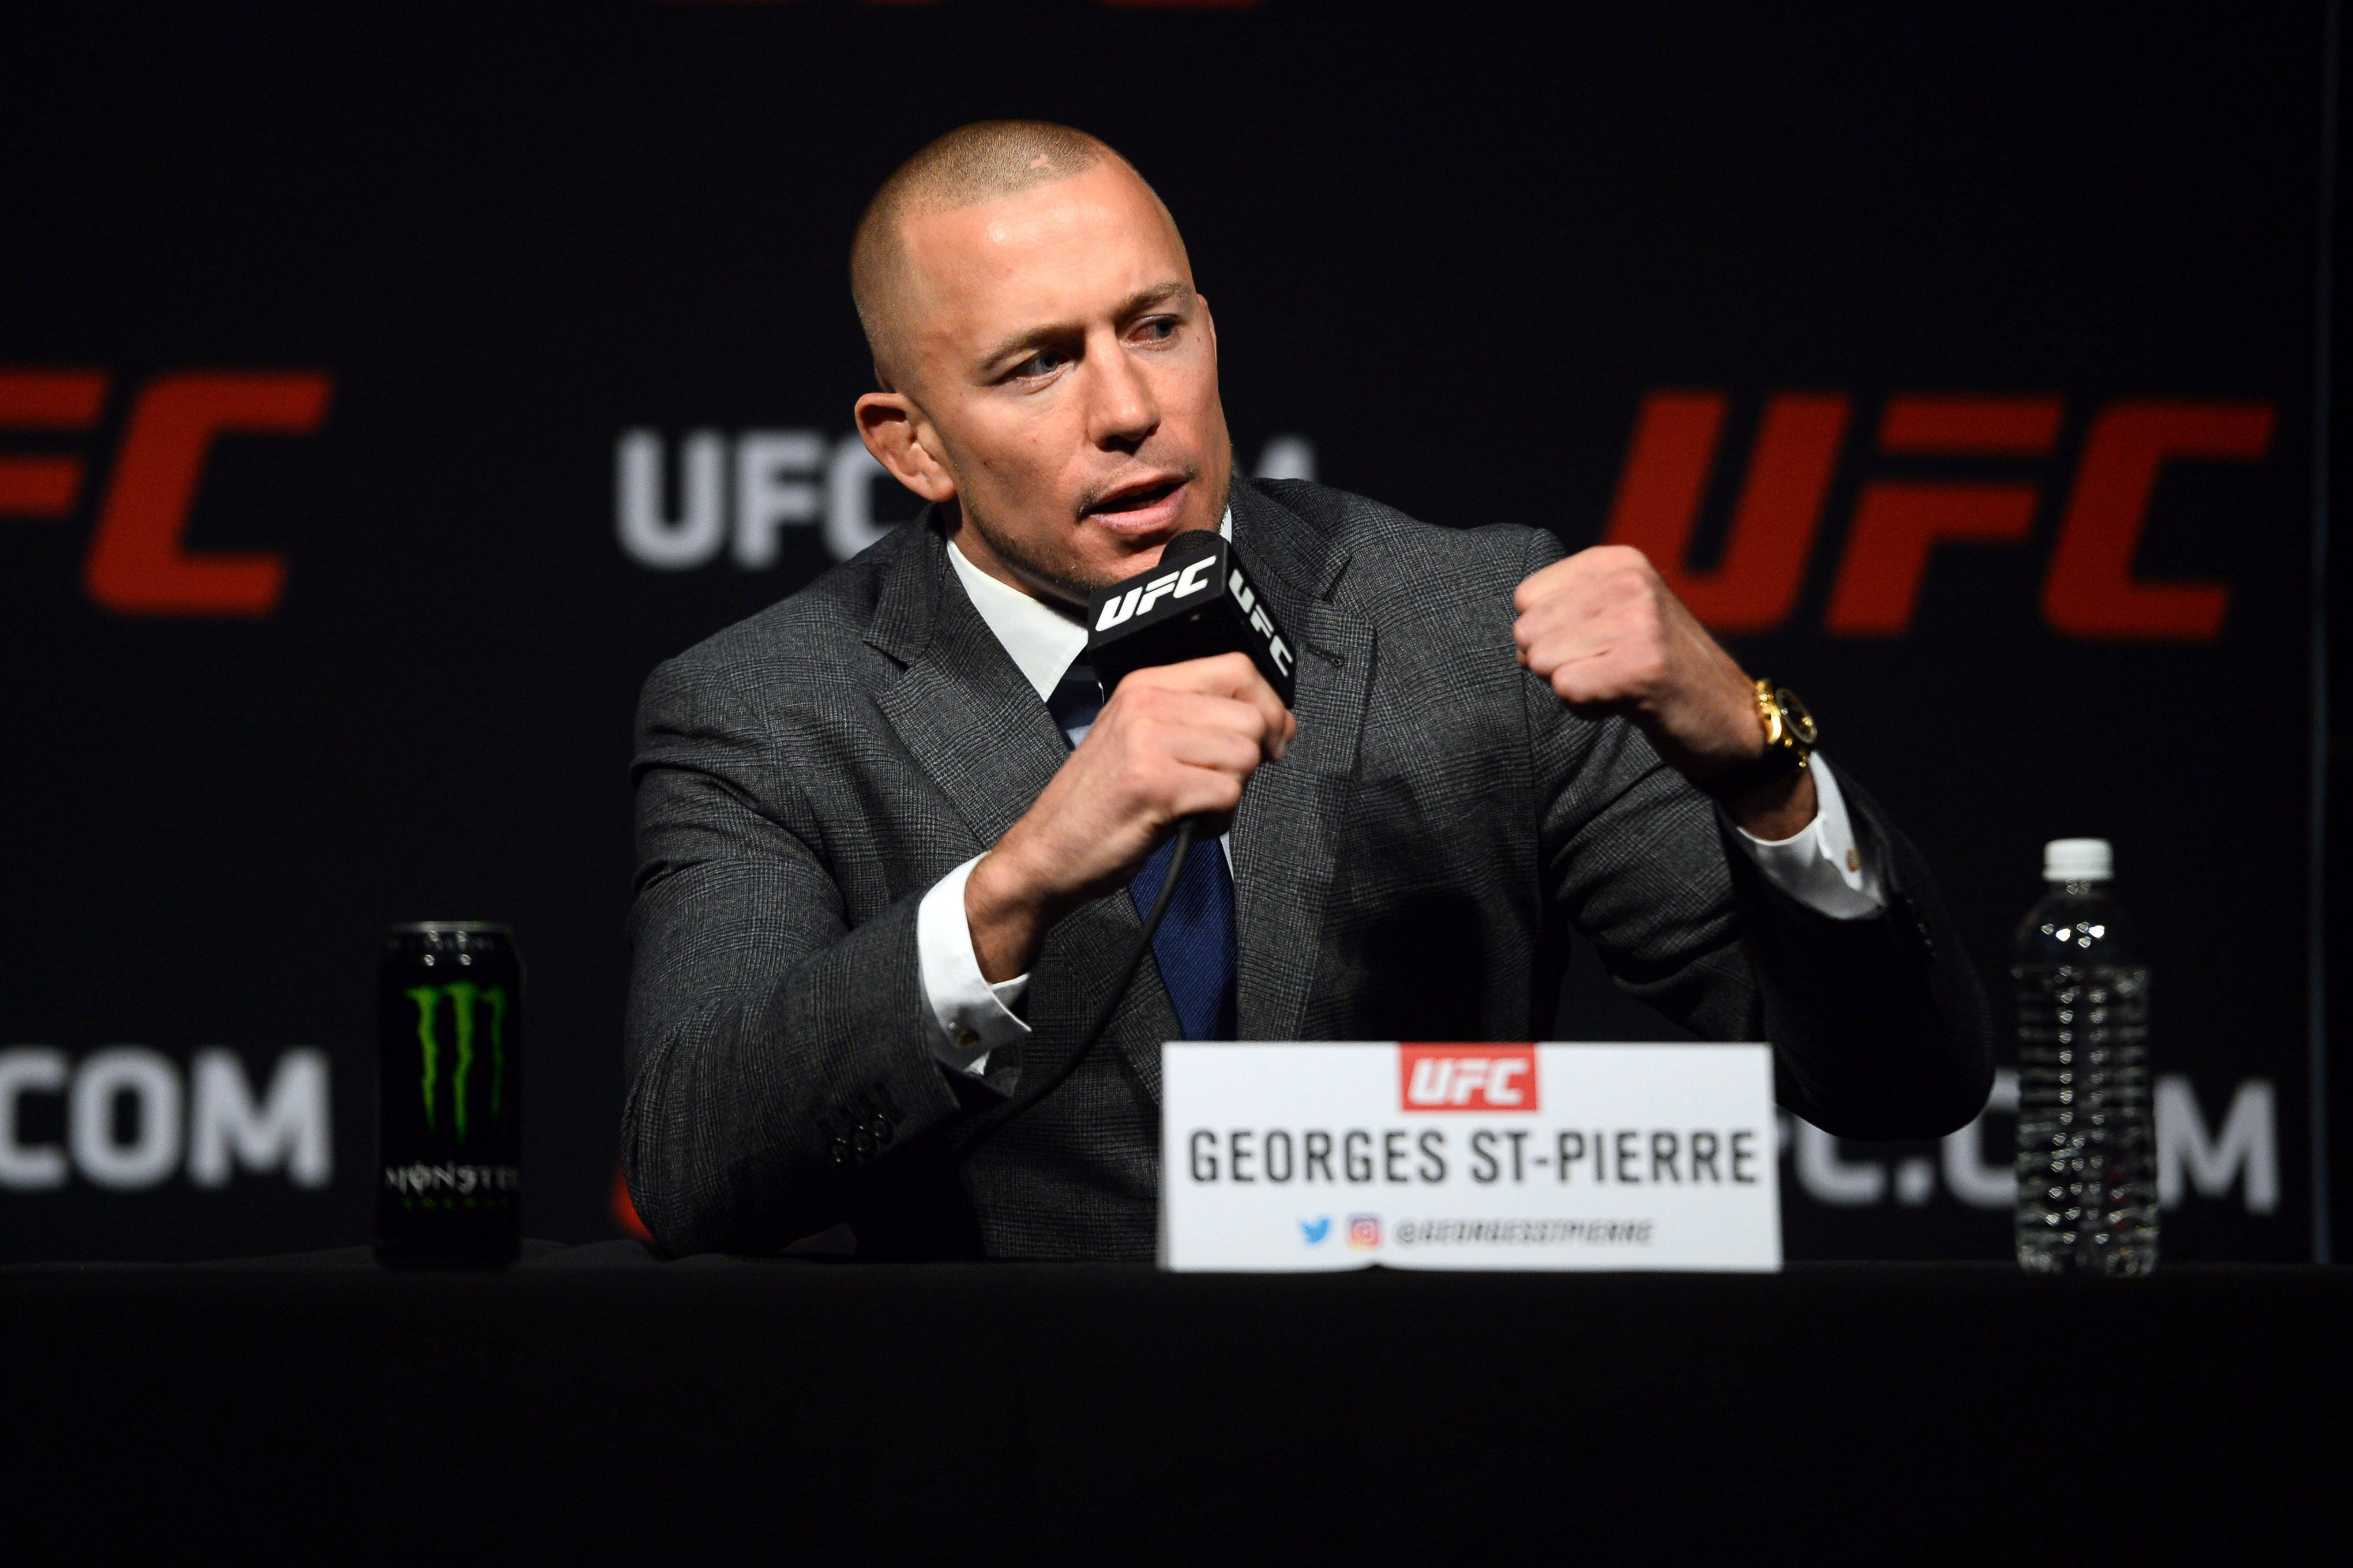 Georges St-Pierre headlines UFC s 2020 Hall of Fame class